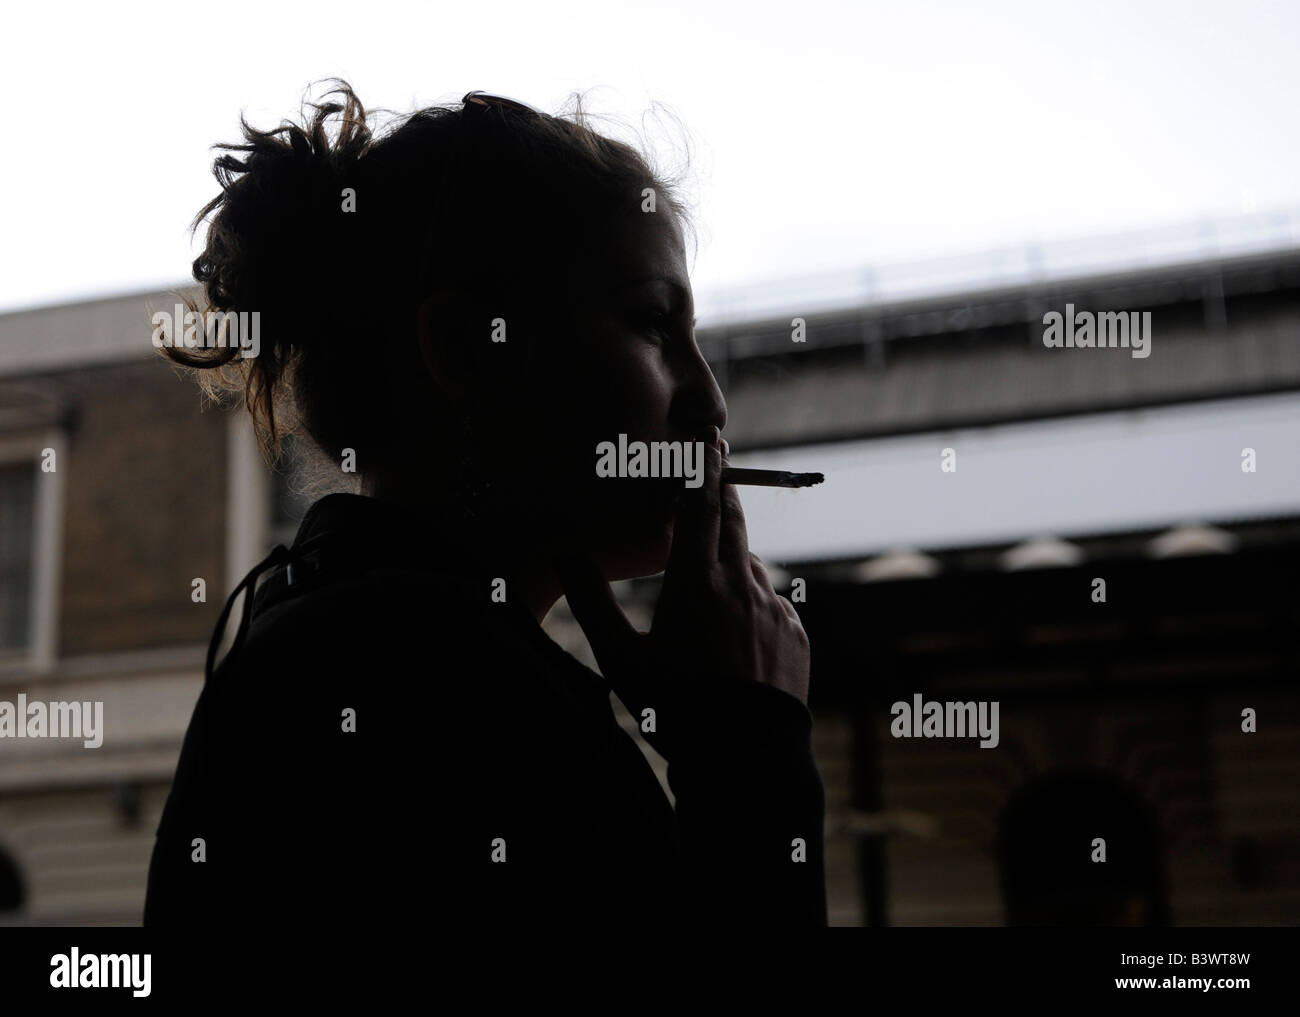 Side profile of a young woman smoking a cigarette, London, England - Stock Image